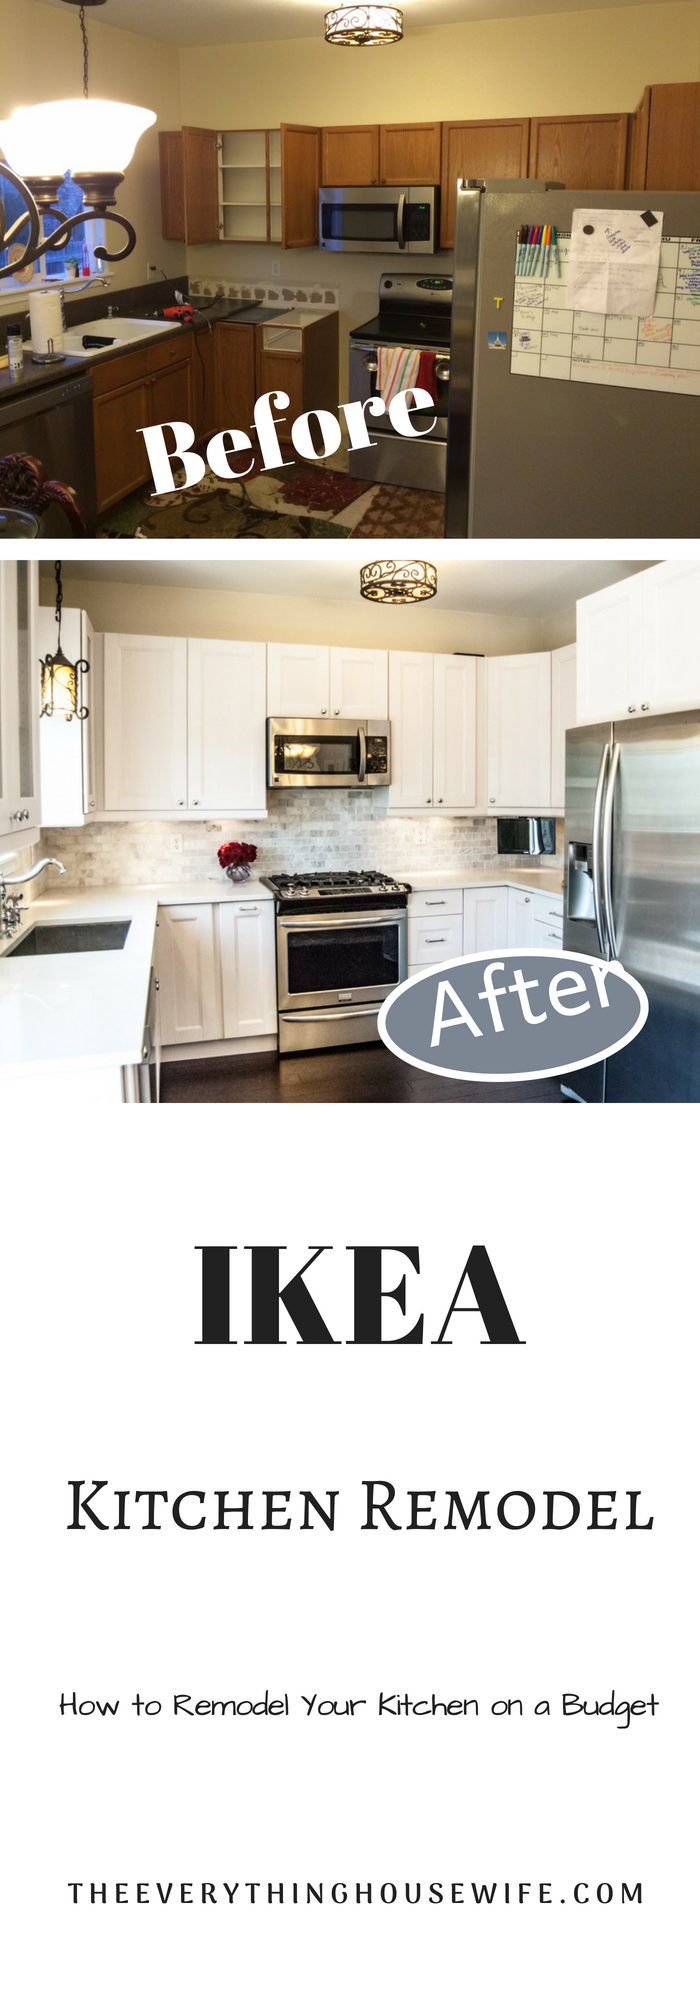 Before and after ikea kitchen the everything housewife blog